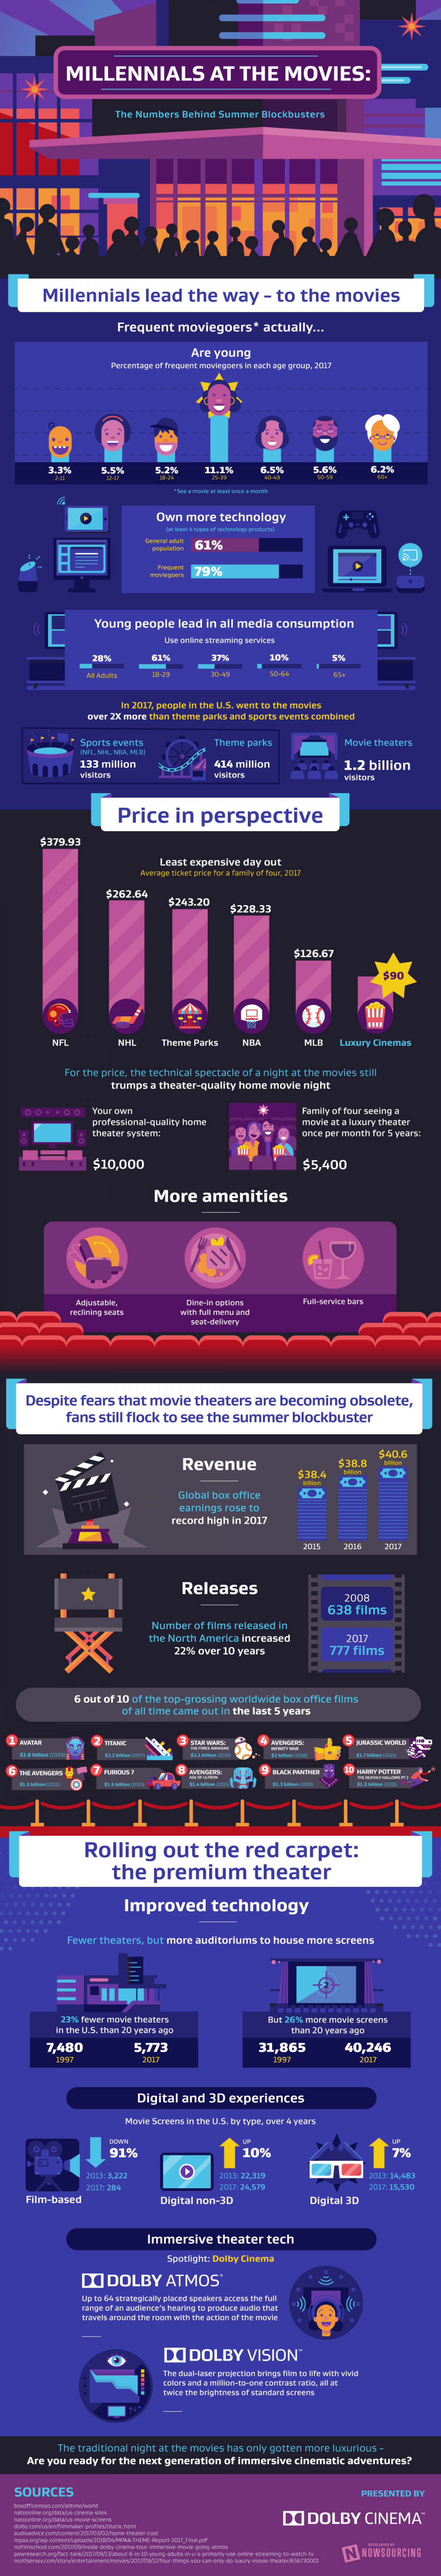 Are Millennials Saving The Summer Blockbuster? Infographic